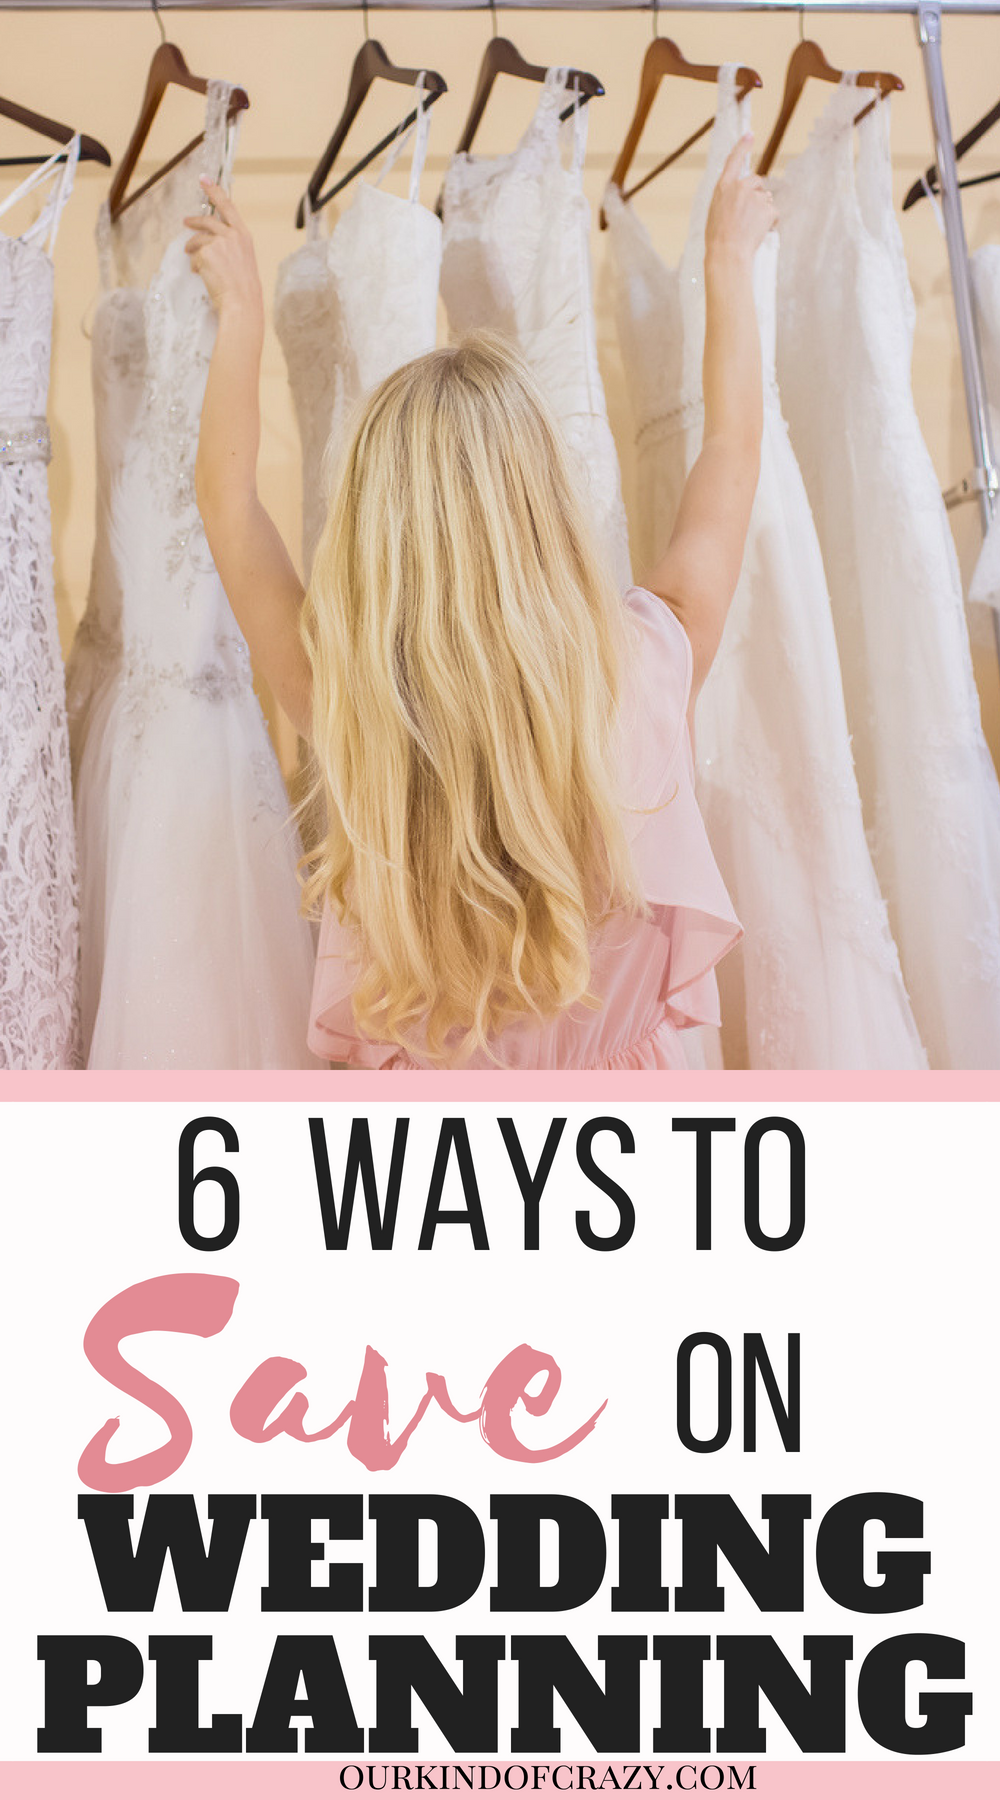 Ways to Save on Wedding Planning - Weddings can be expensive, but there are lots of ways you can save money on your wedding.  See some here.